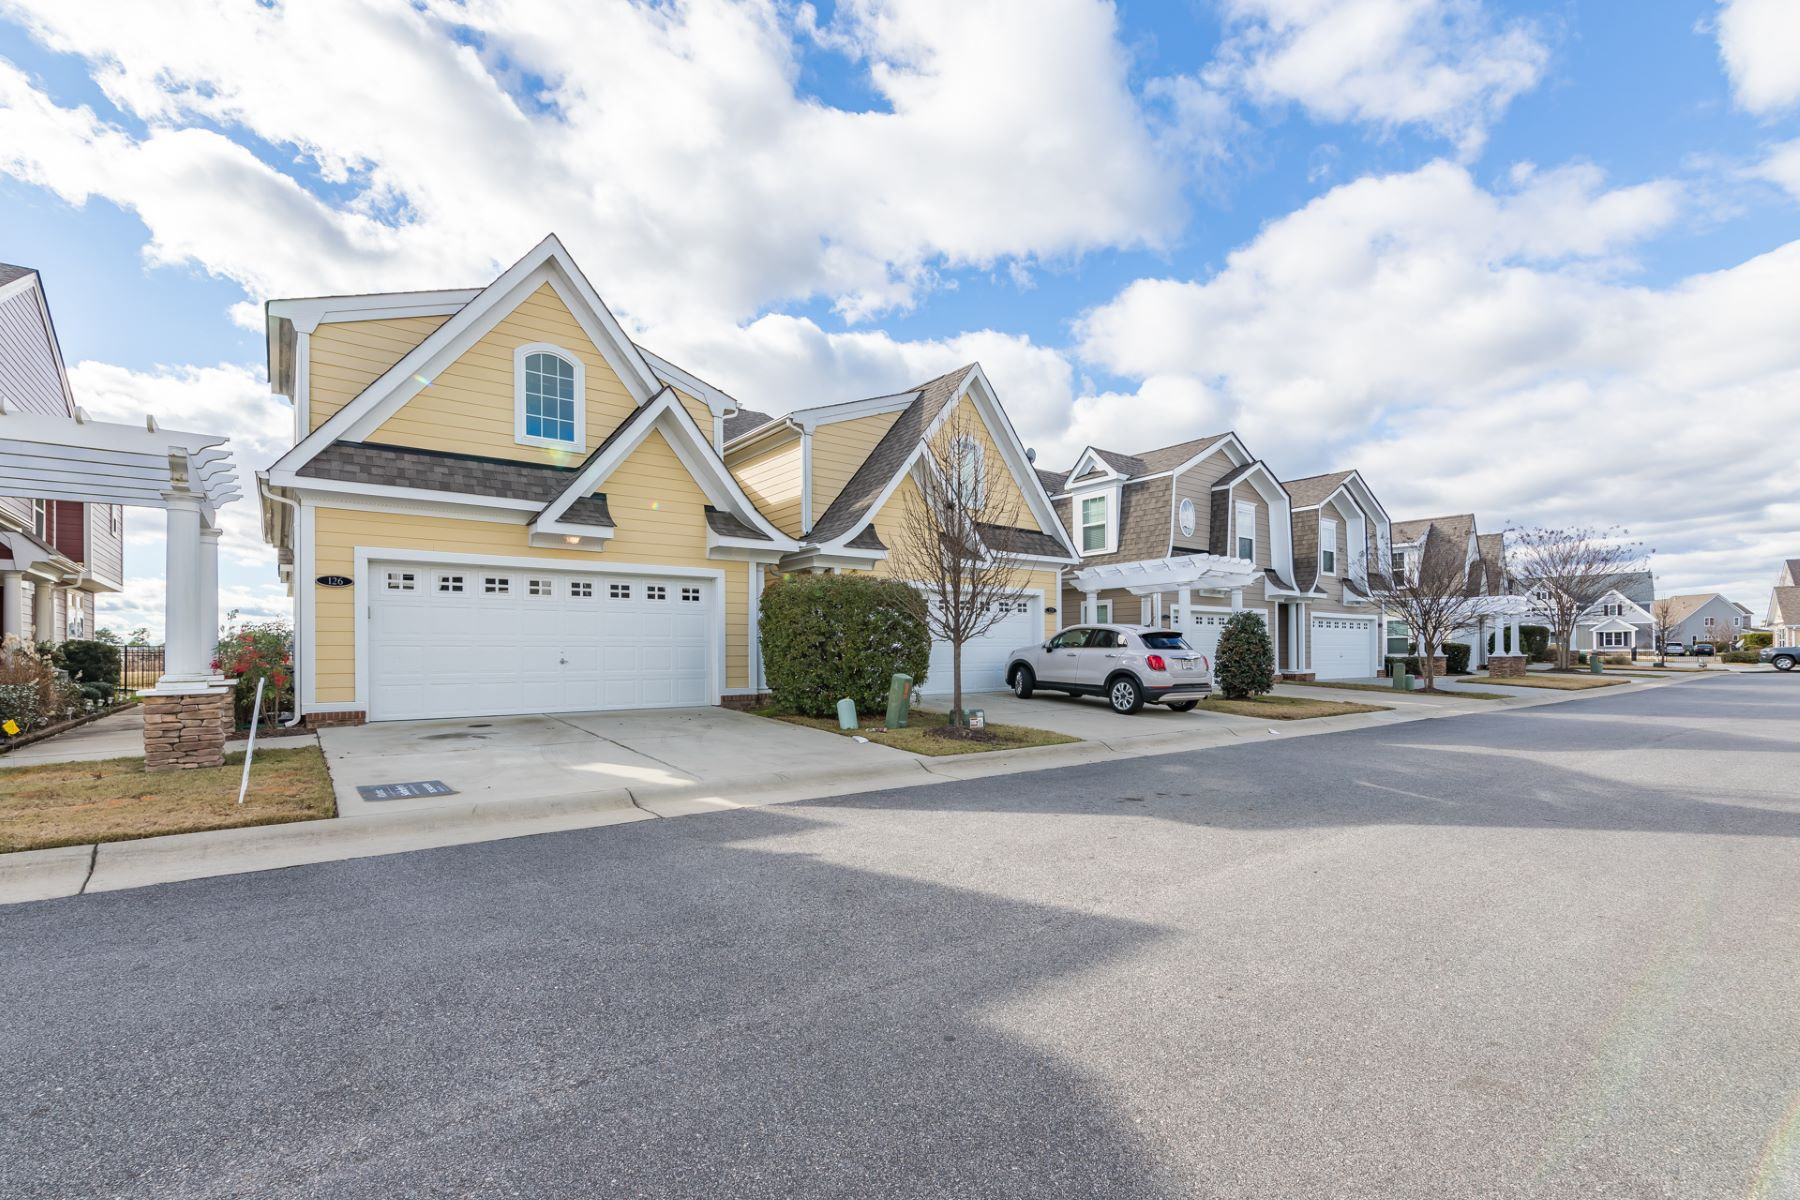 Condominium for Sale at 126 Sharpe Drive 126 Sharpe Drive Suffolk, Virginia 23435 United States